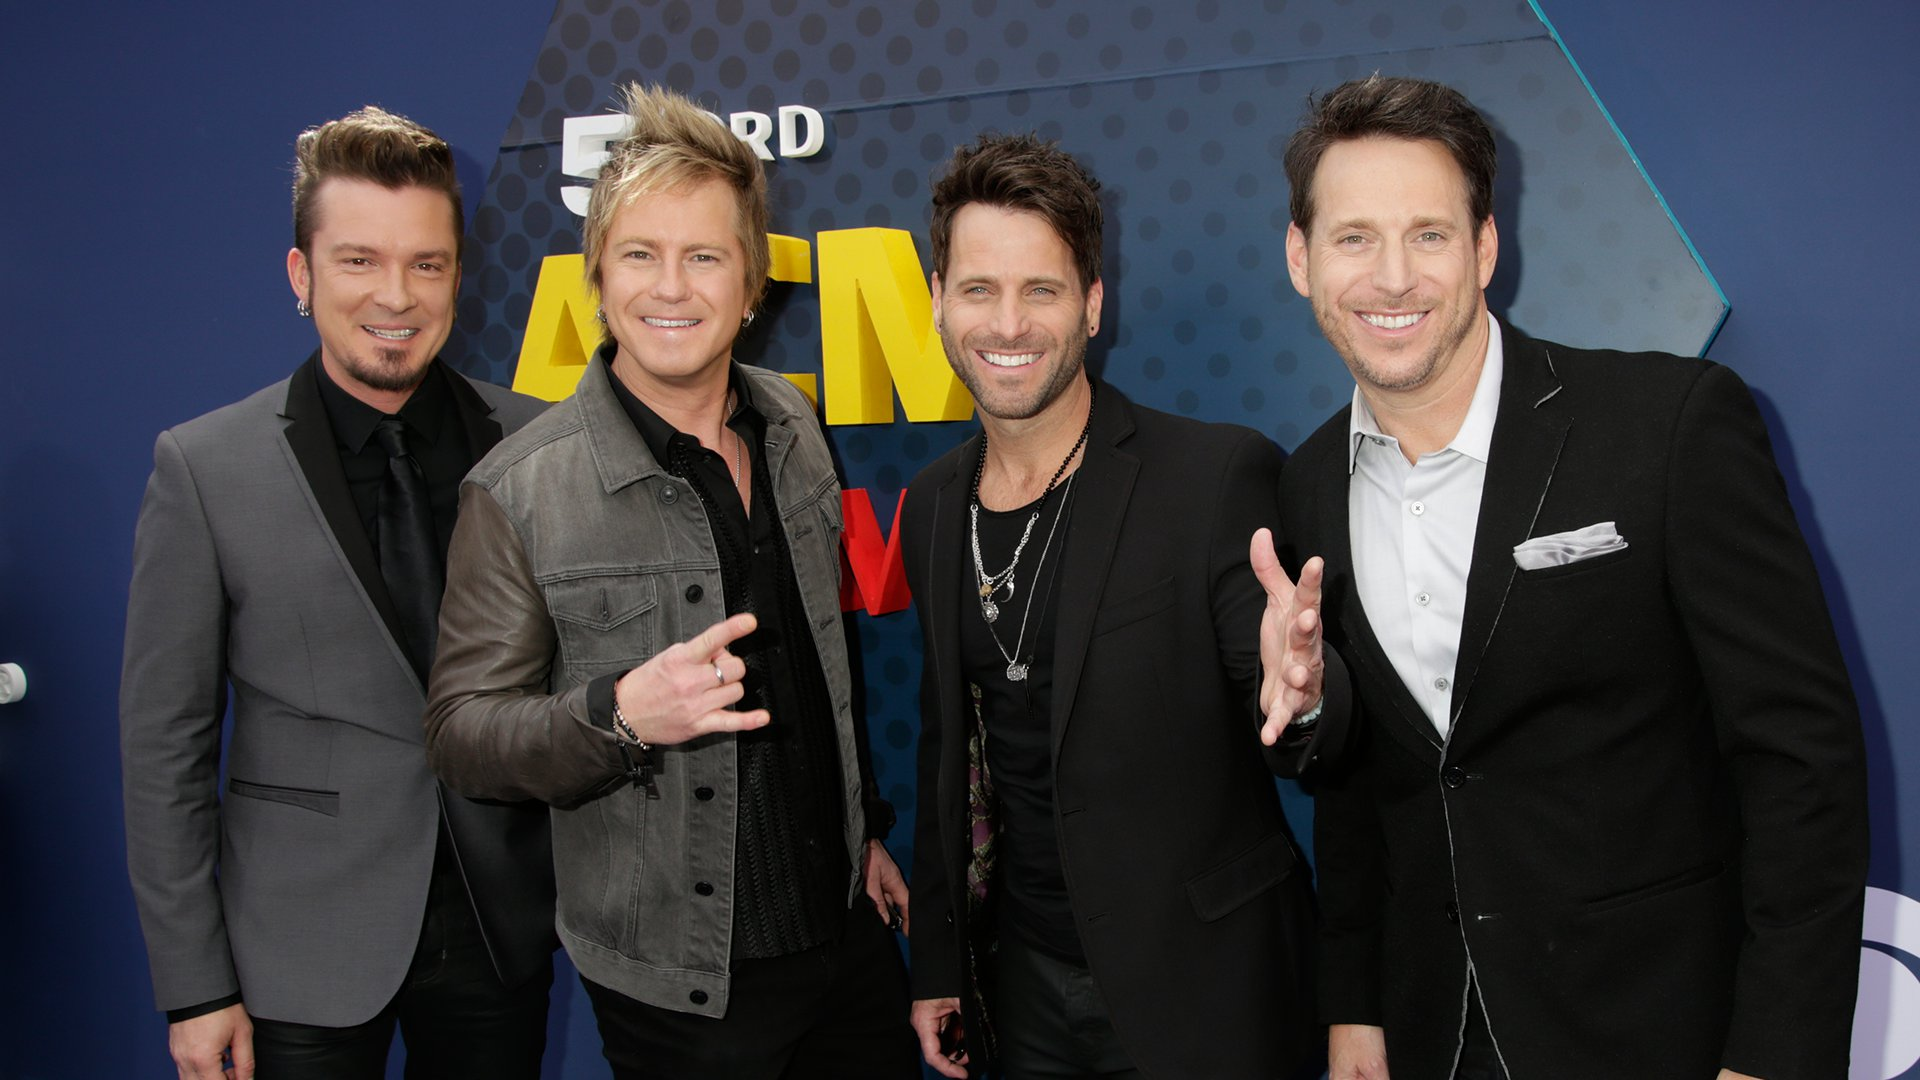 The members of Parmalee wear a variety of different textures on the red carpet, including velvet and denim.